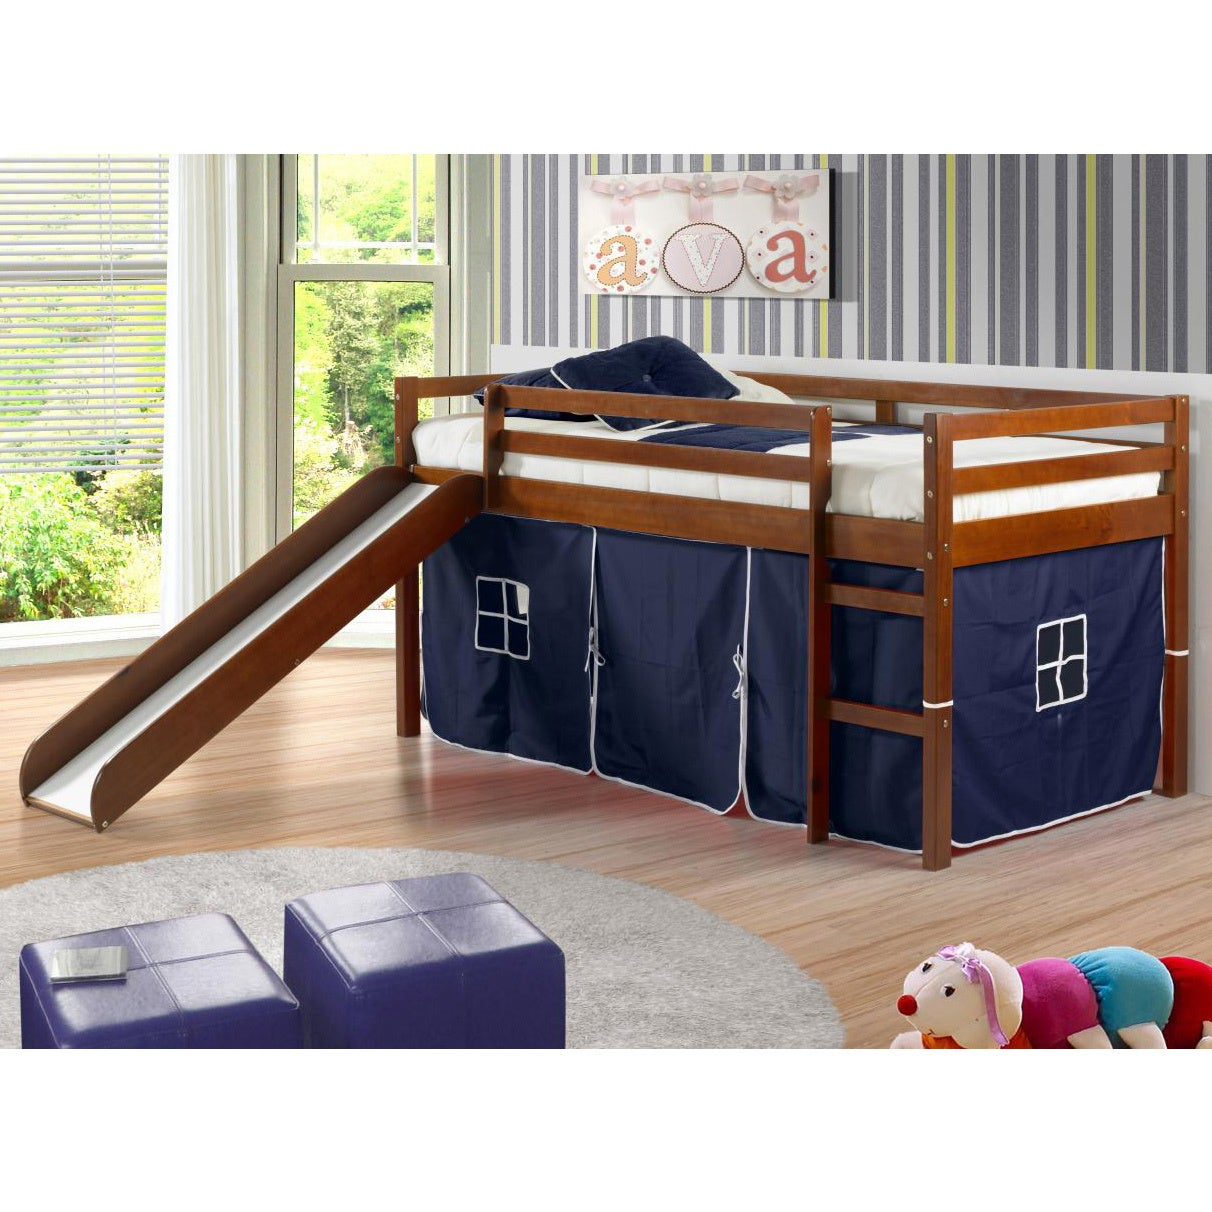 Shop Donco Kids Twin size Tent Loft Bed with Slide   Free Shipping